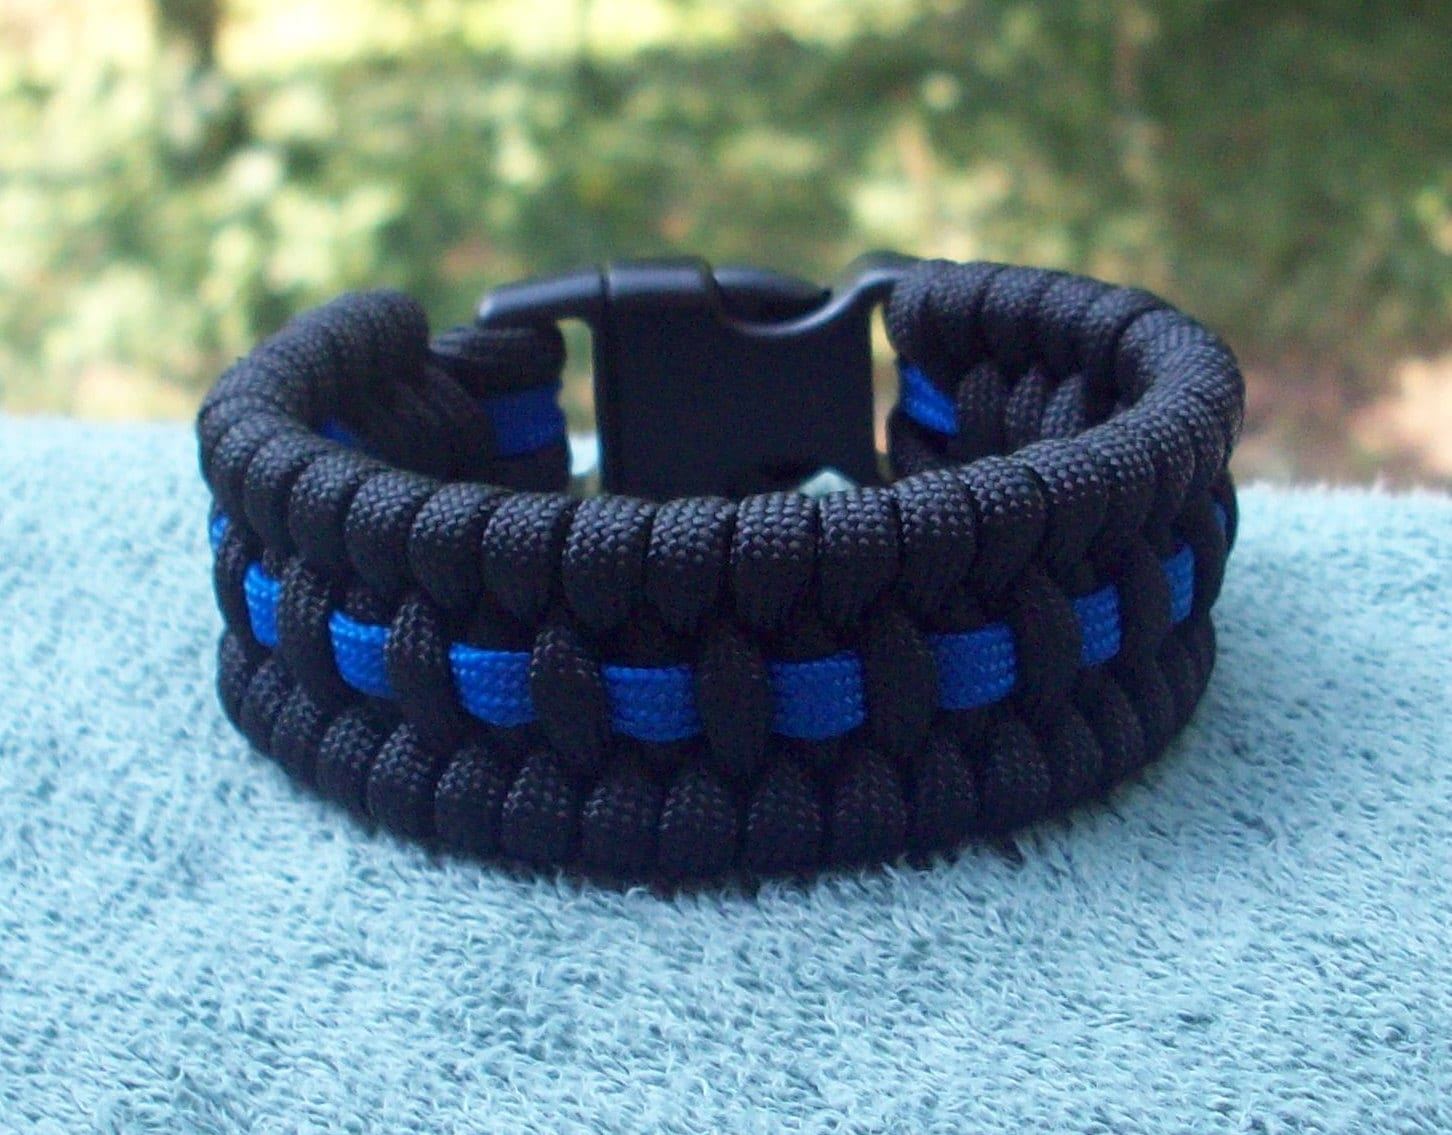 bracelets black item snap men drop from women shipping lives matter bracelet button blue charm in police line for thin lot adjustable leather